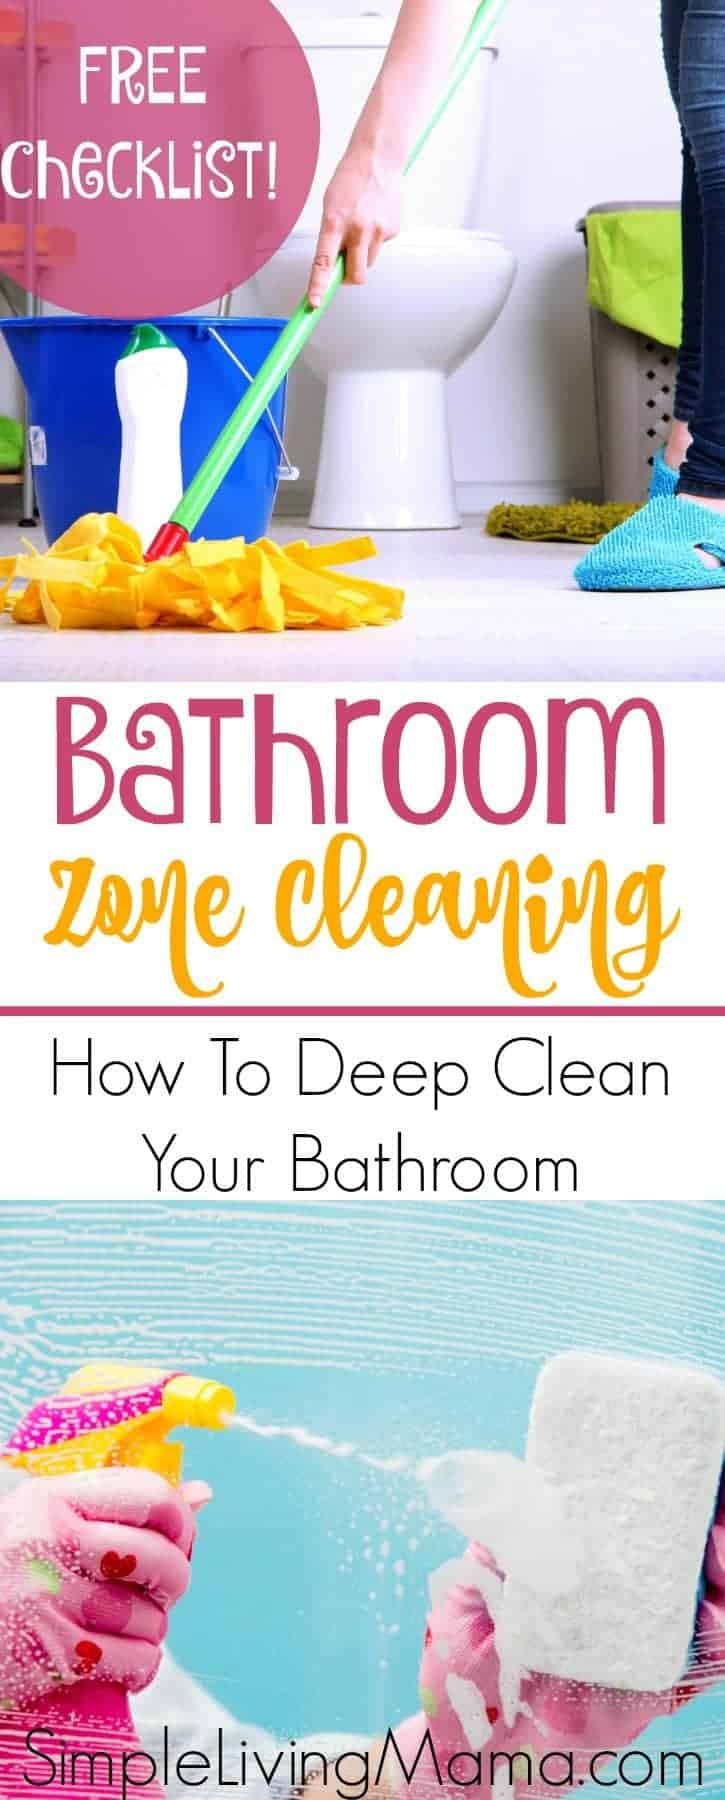 Bathroom Zone Cleaning Routine How To Deep Clean Your